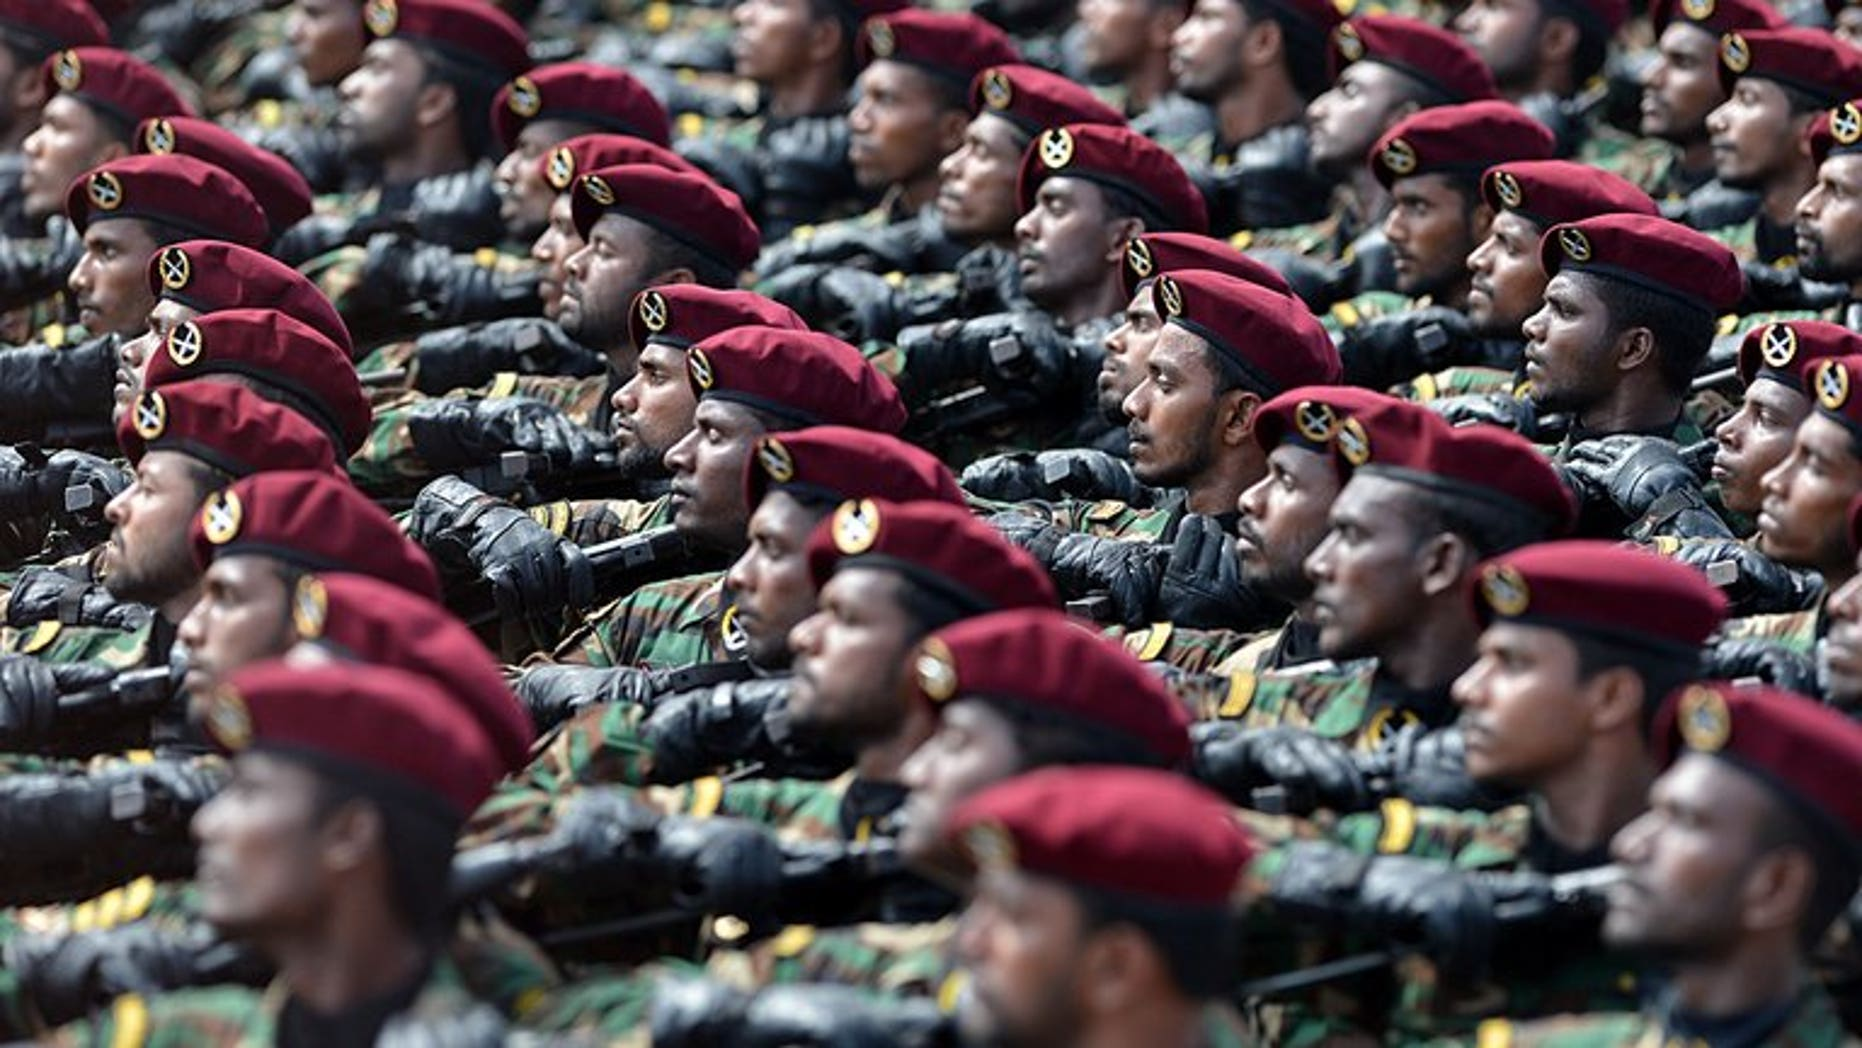 Sri Lankan commandos march during a Victory Day parade in Colombo on May 18, 2013. Sri Lanka's police arrested 12 commandos in connection with the execution-style killing of five students during the island's Tamil separatist war, an official said Friday.